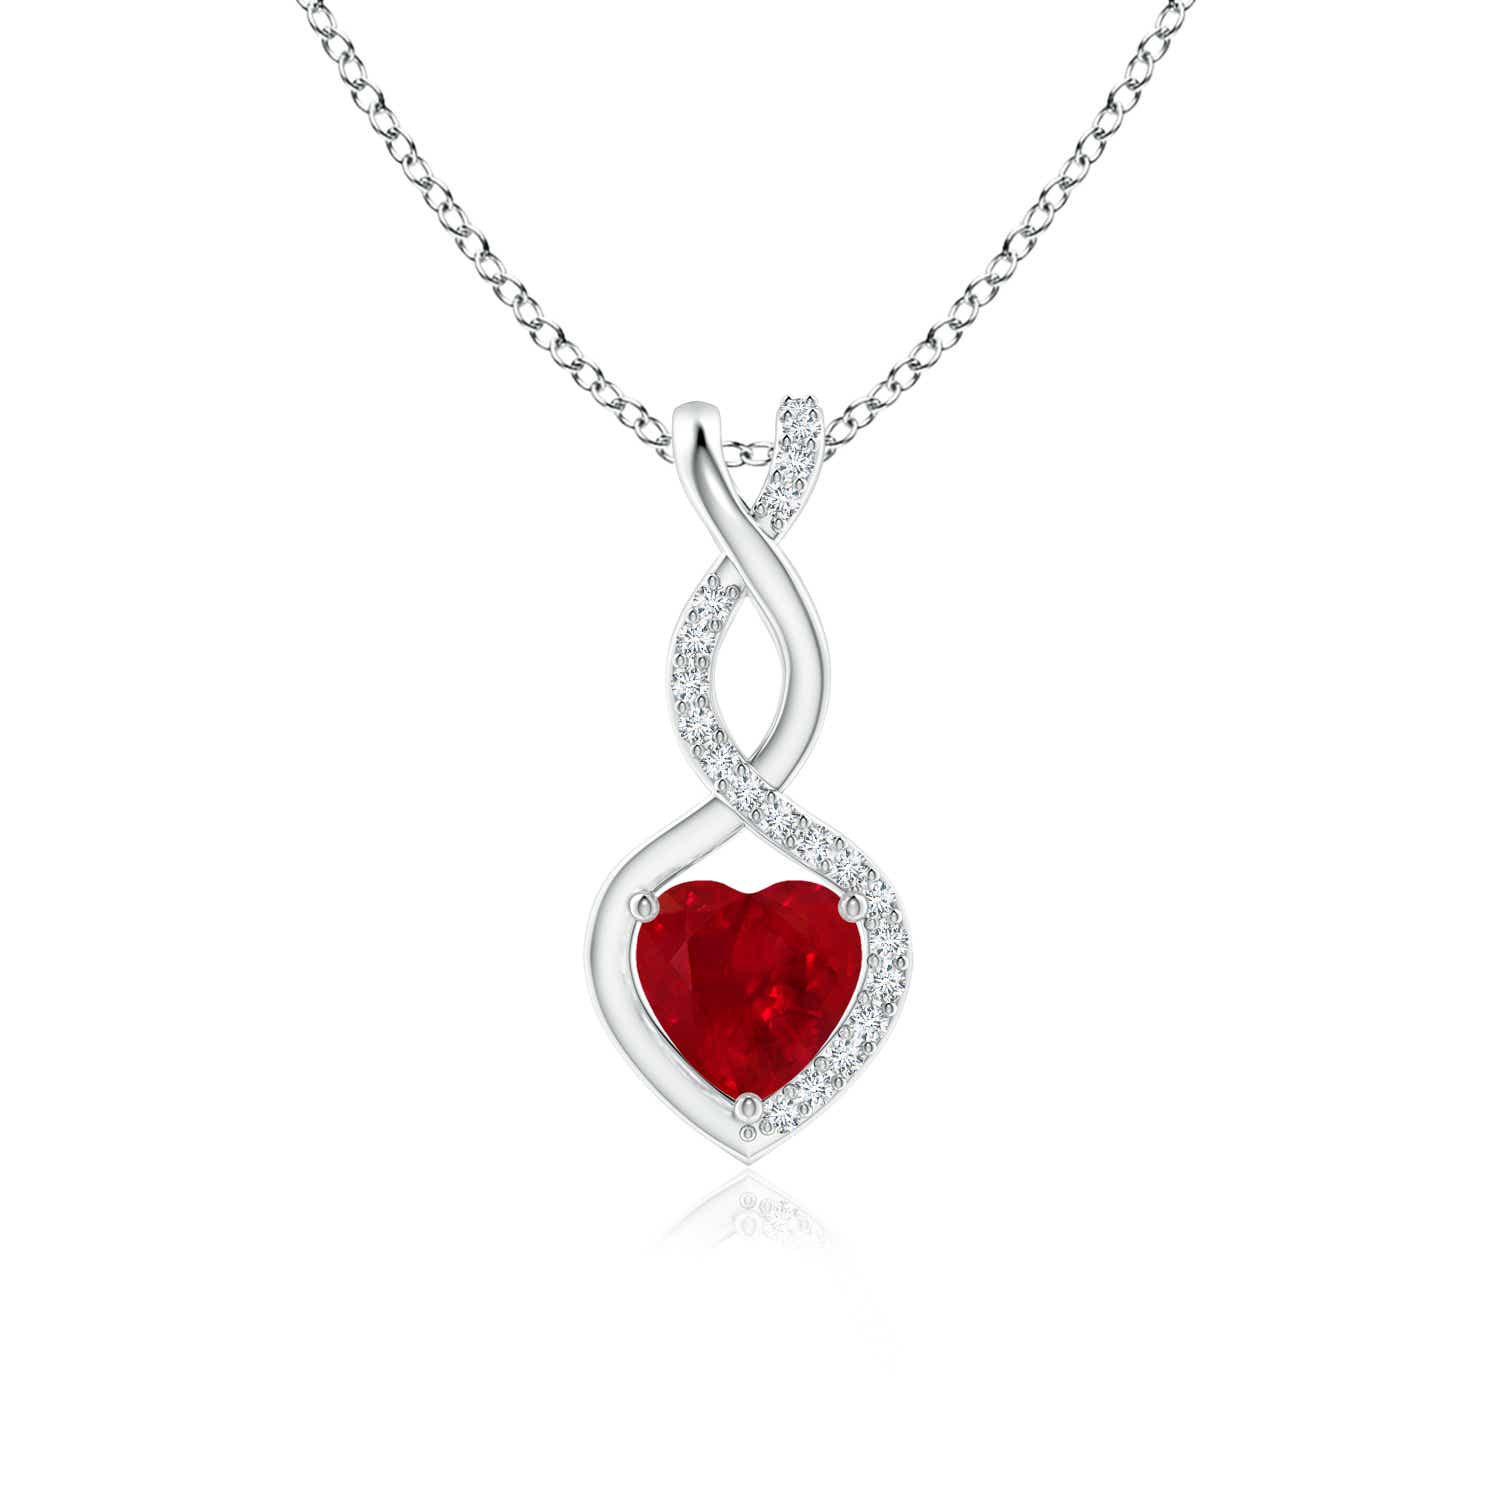 Natural ruby diamond heart pendant necklace 18 chain silver 14k natural ruby diamond heart pendant necklace 18 034 aloadofball Images